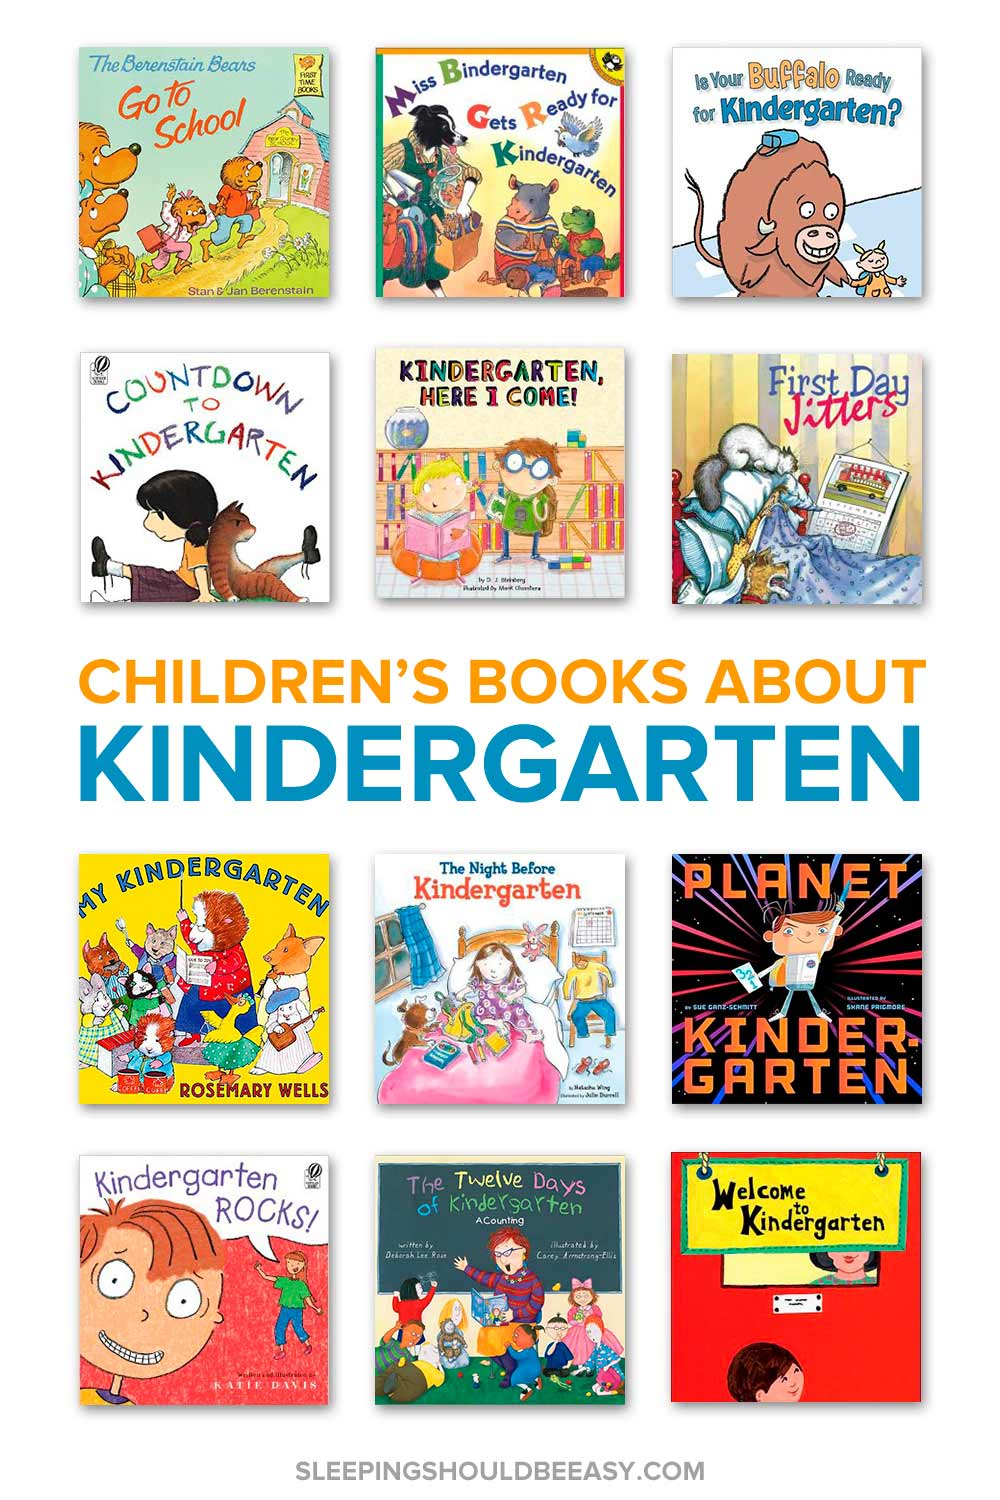 A collection of children's books about kindergarten